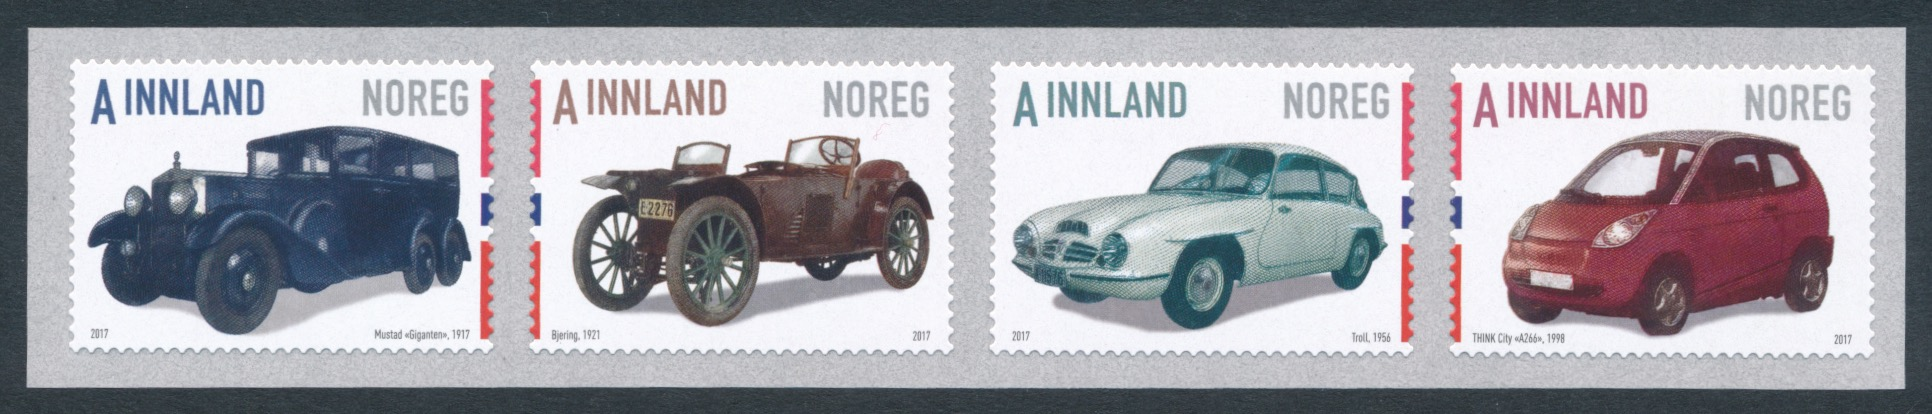 https://www.norstamps.com/content/images/stamps/norway/1966-69.jpeg